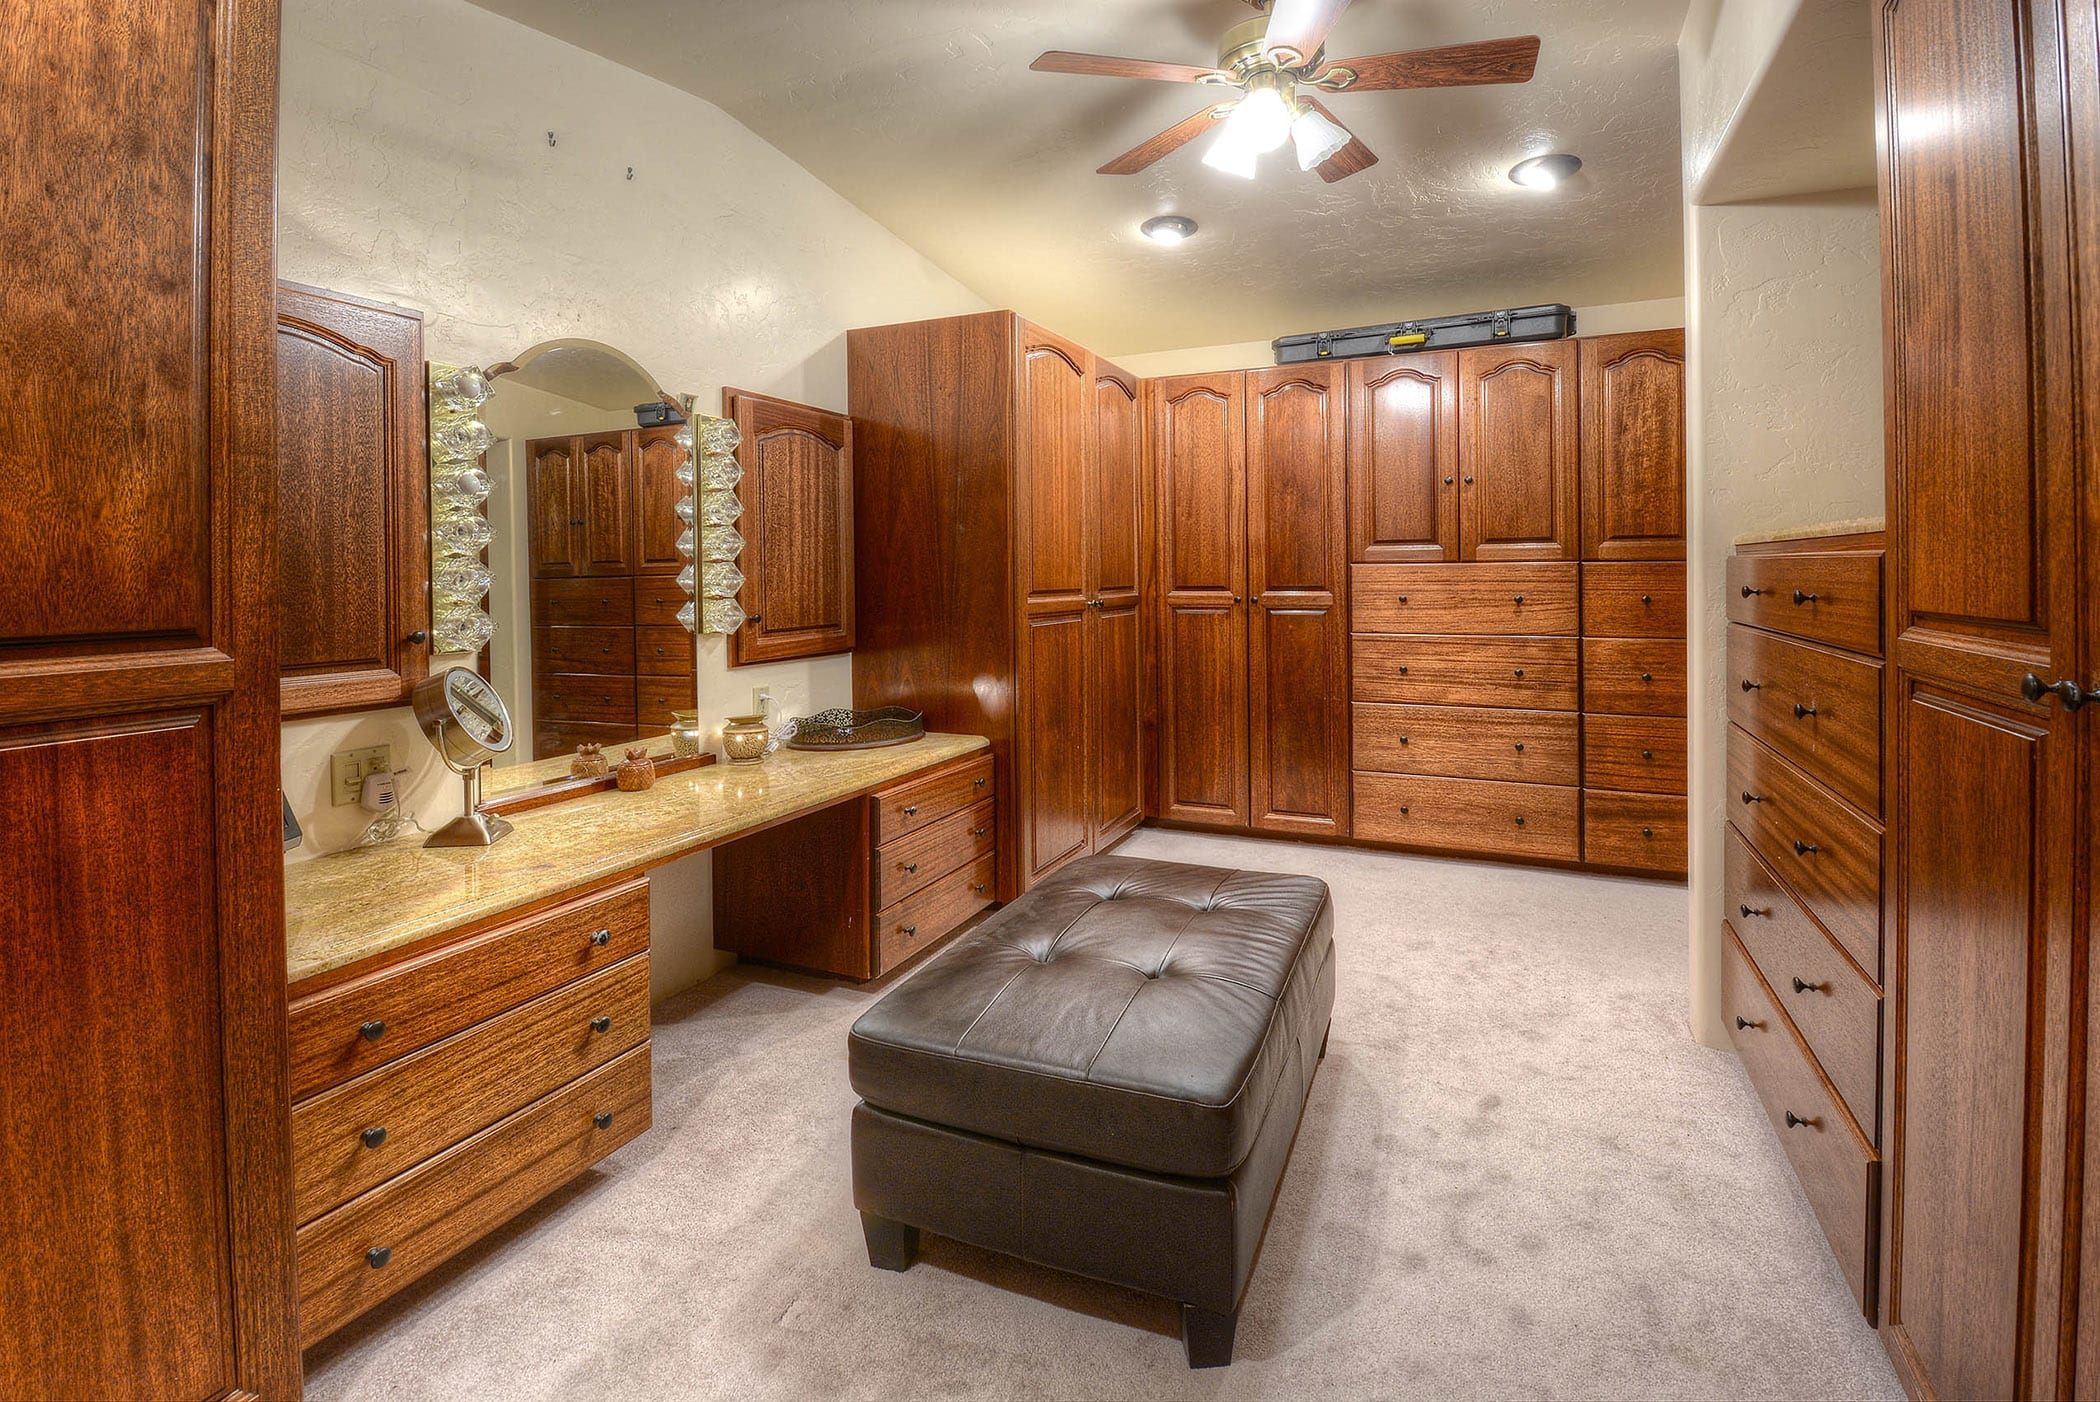 Store all of your belongings in the expansive walk-in closet.